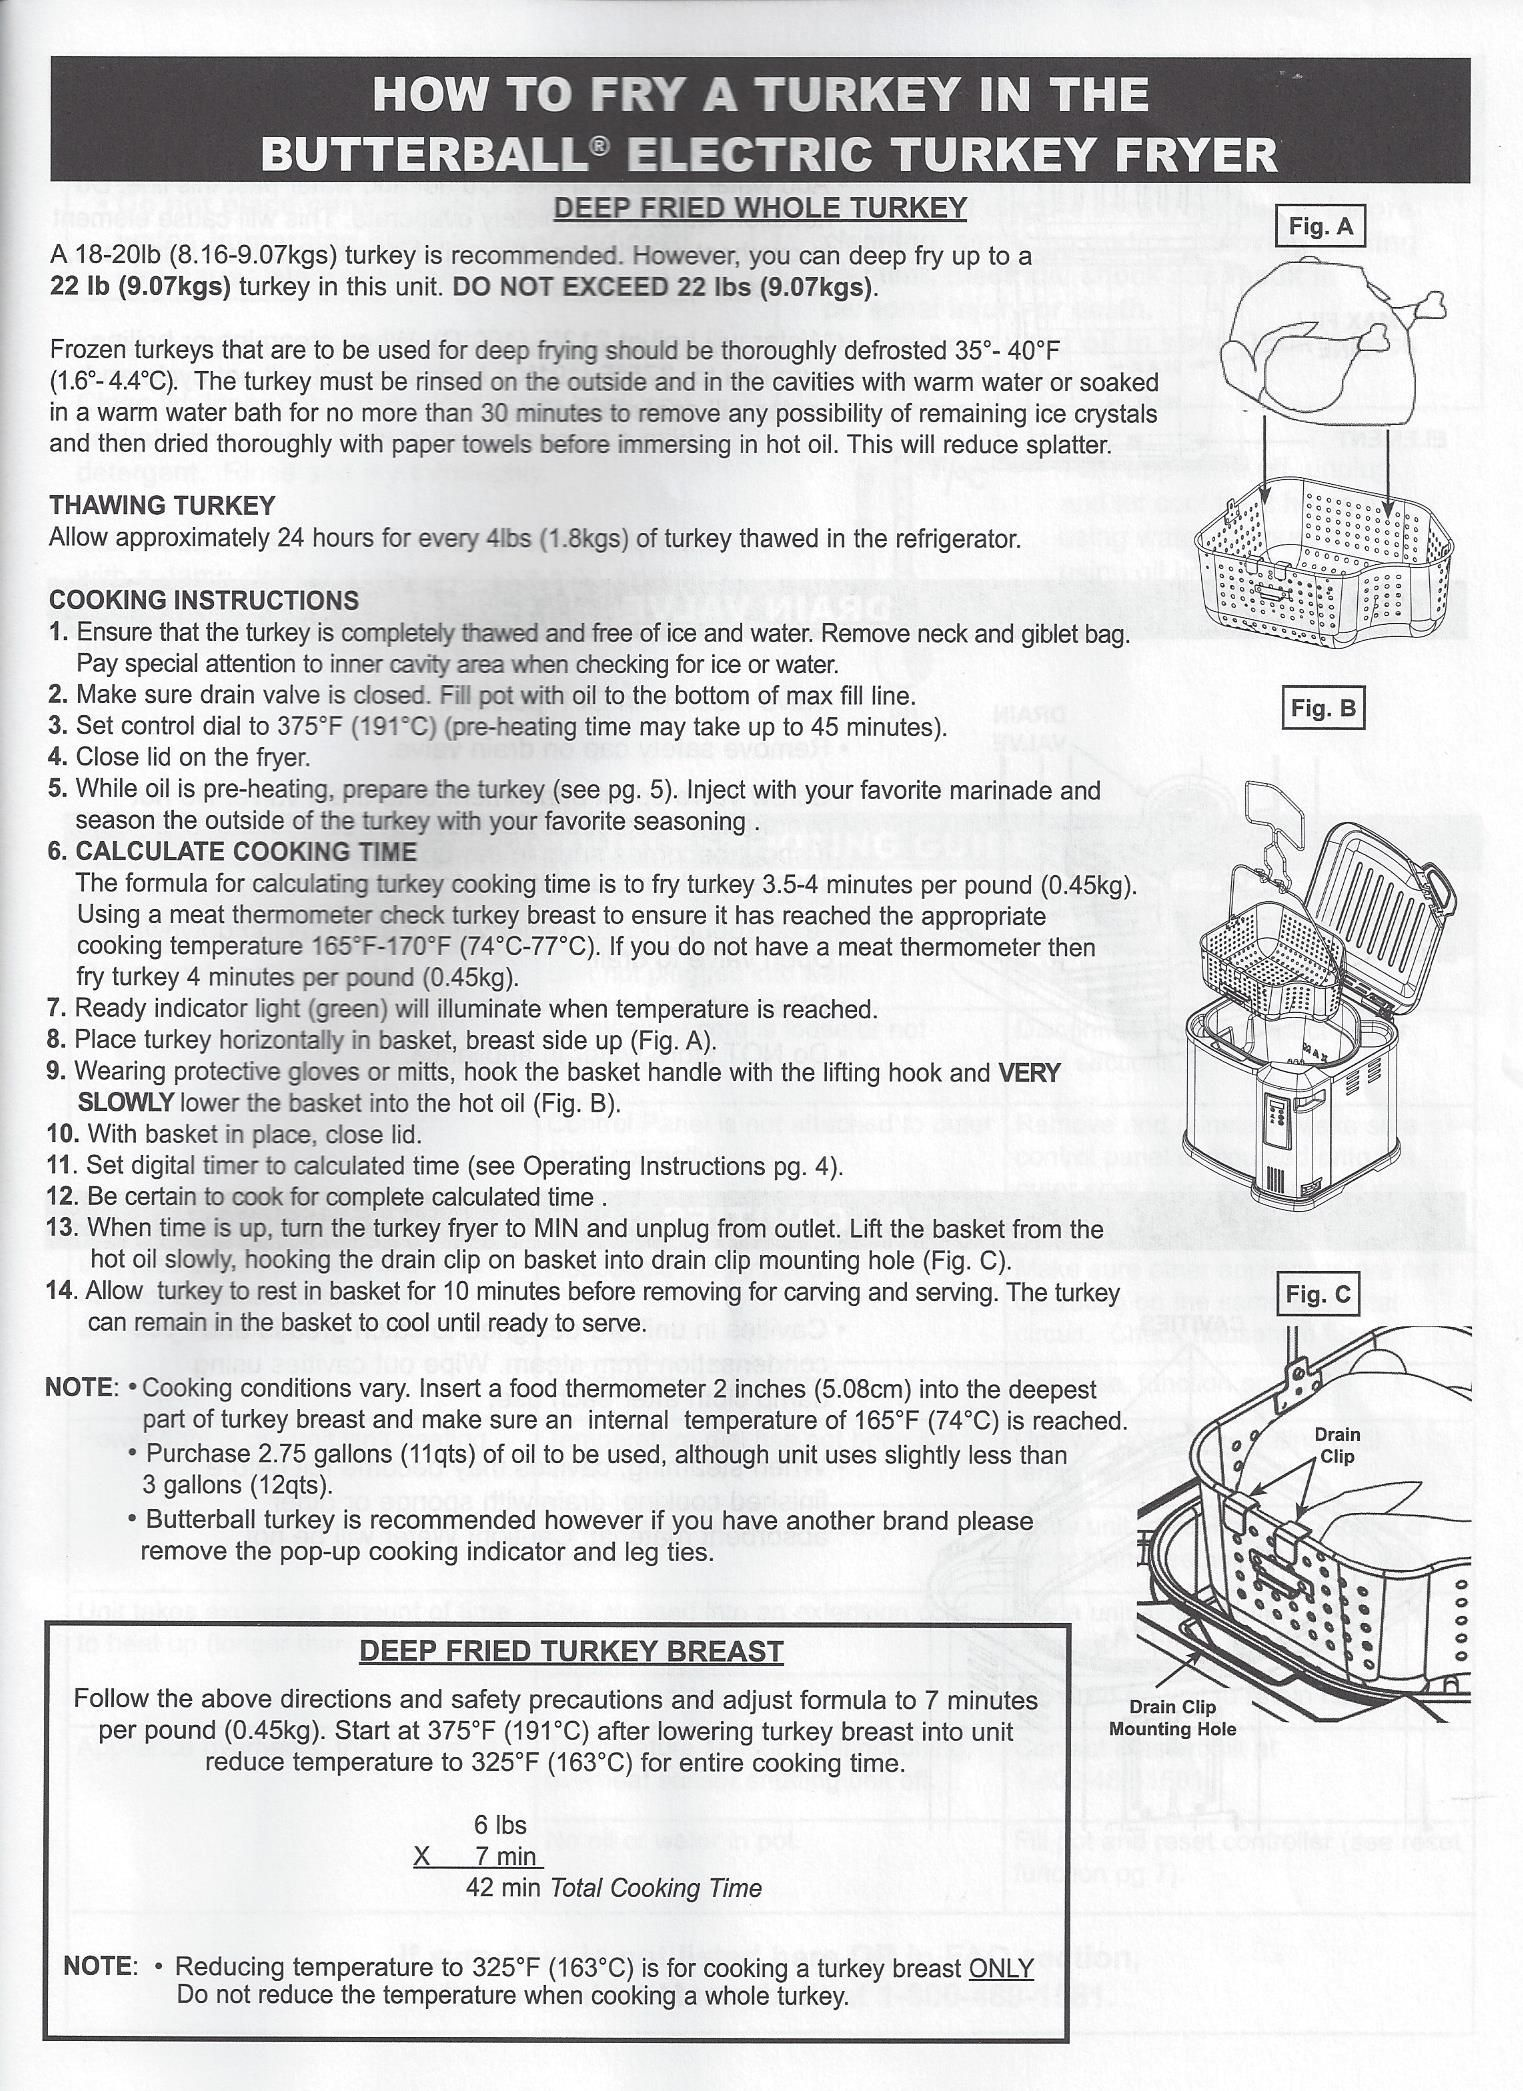 butterball electric turkey fryer how to cook a turkey turkey rh pinterest com butterball deep fryer instructions butterball xl deep fryer manual